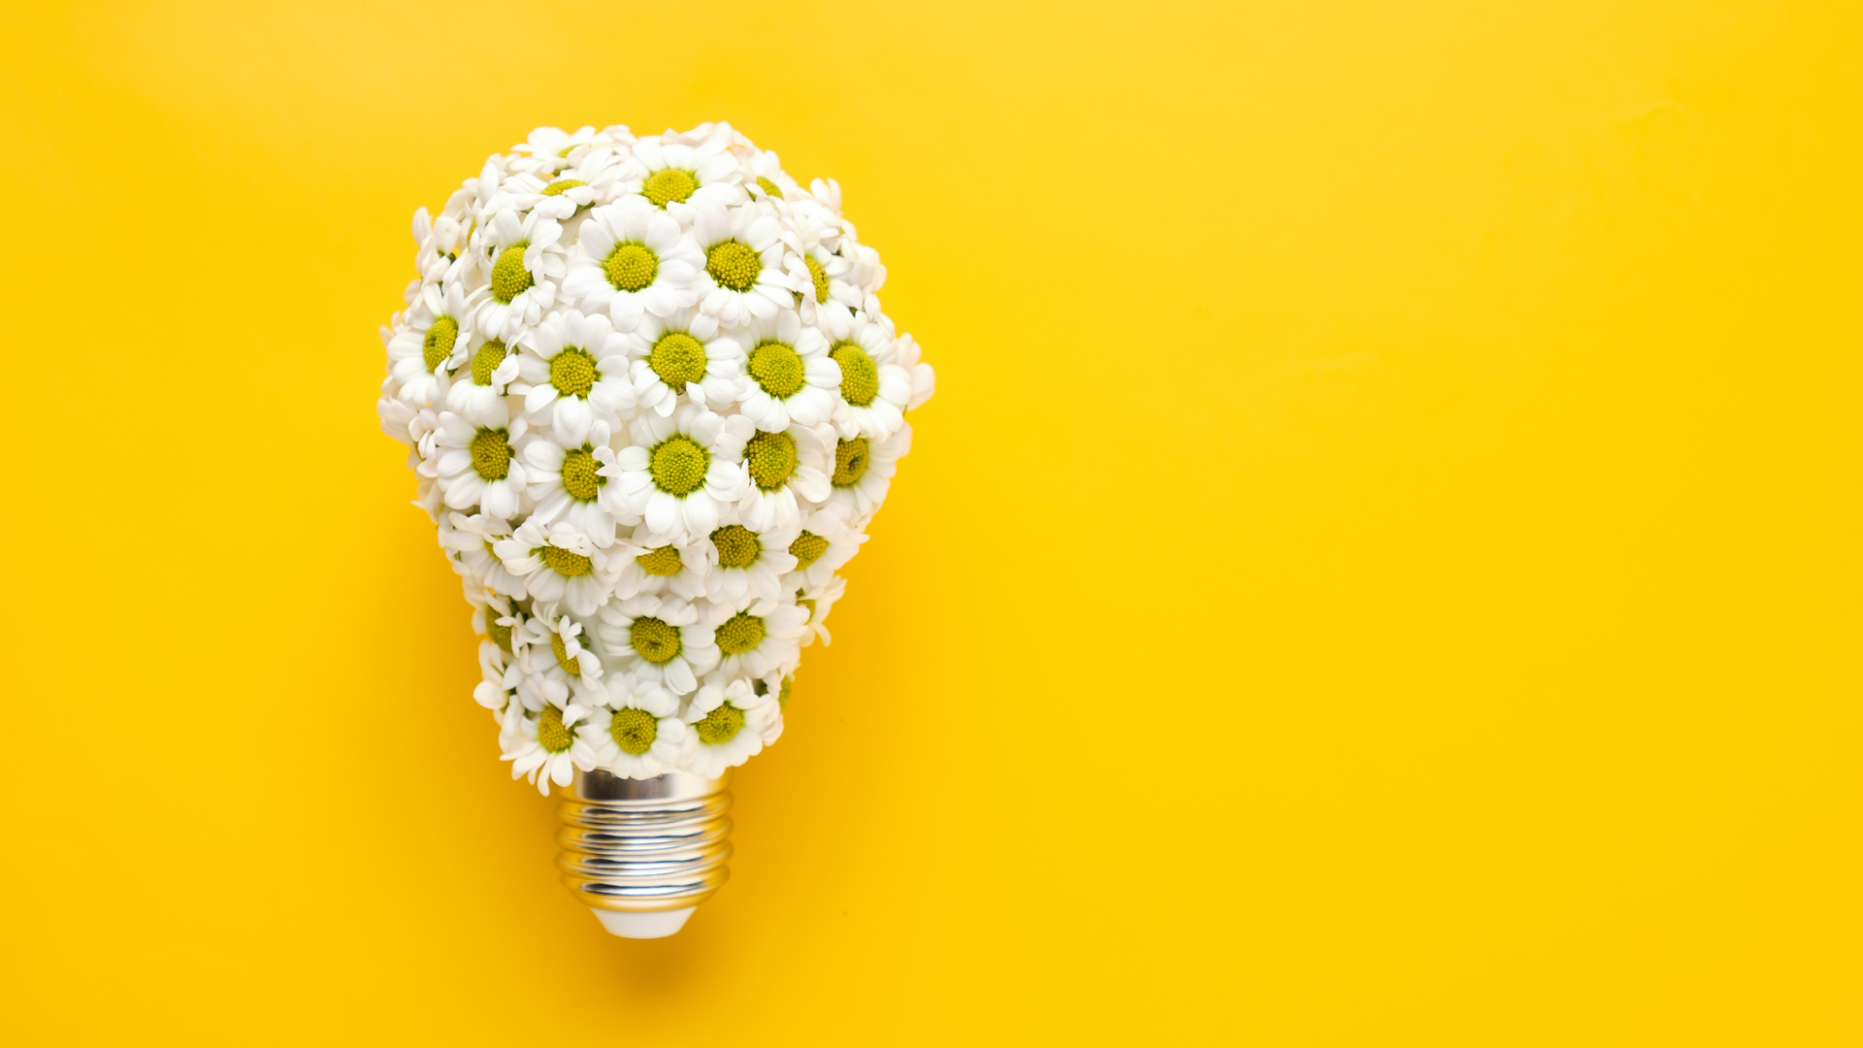 A lightbulb made of daisies to symbolize spring energy